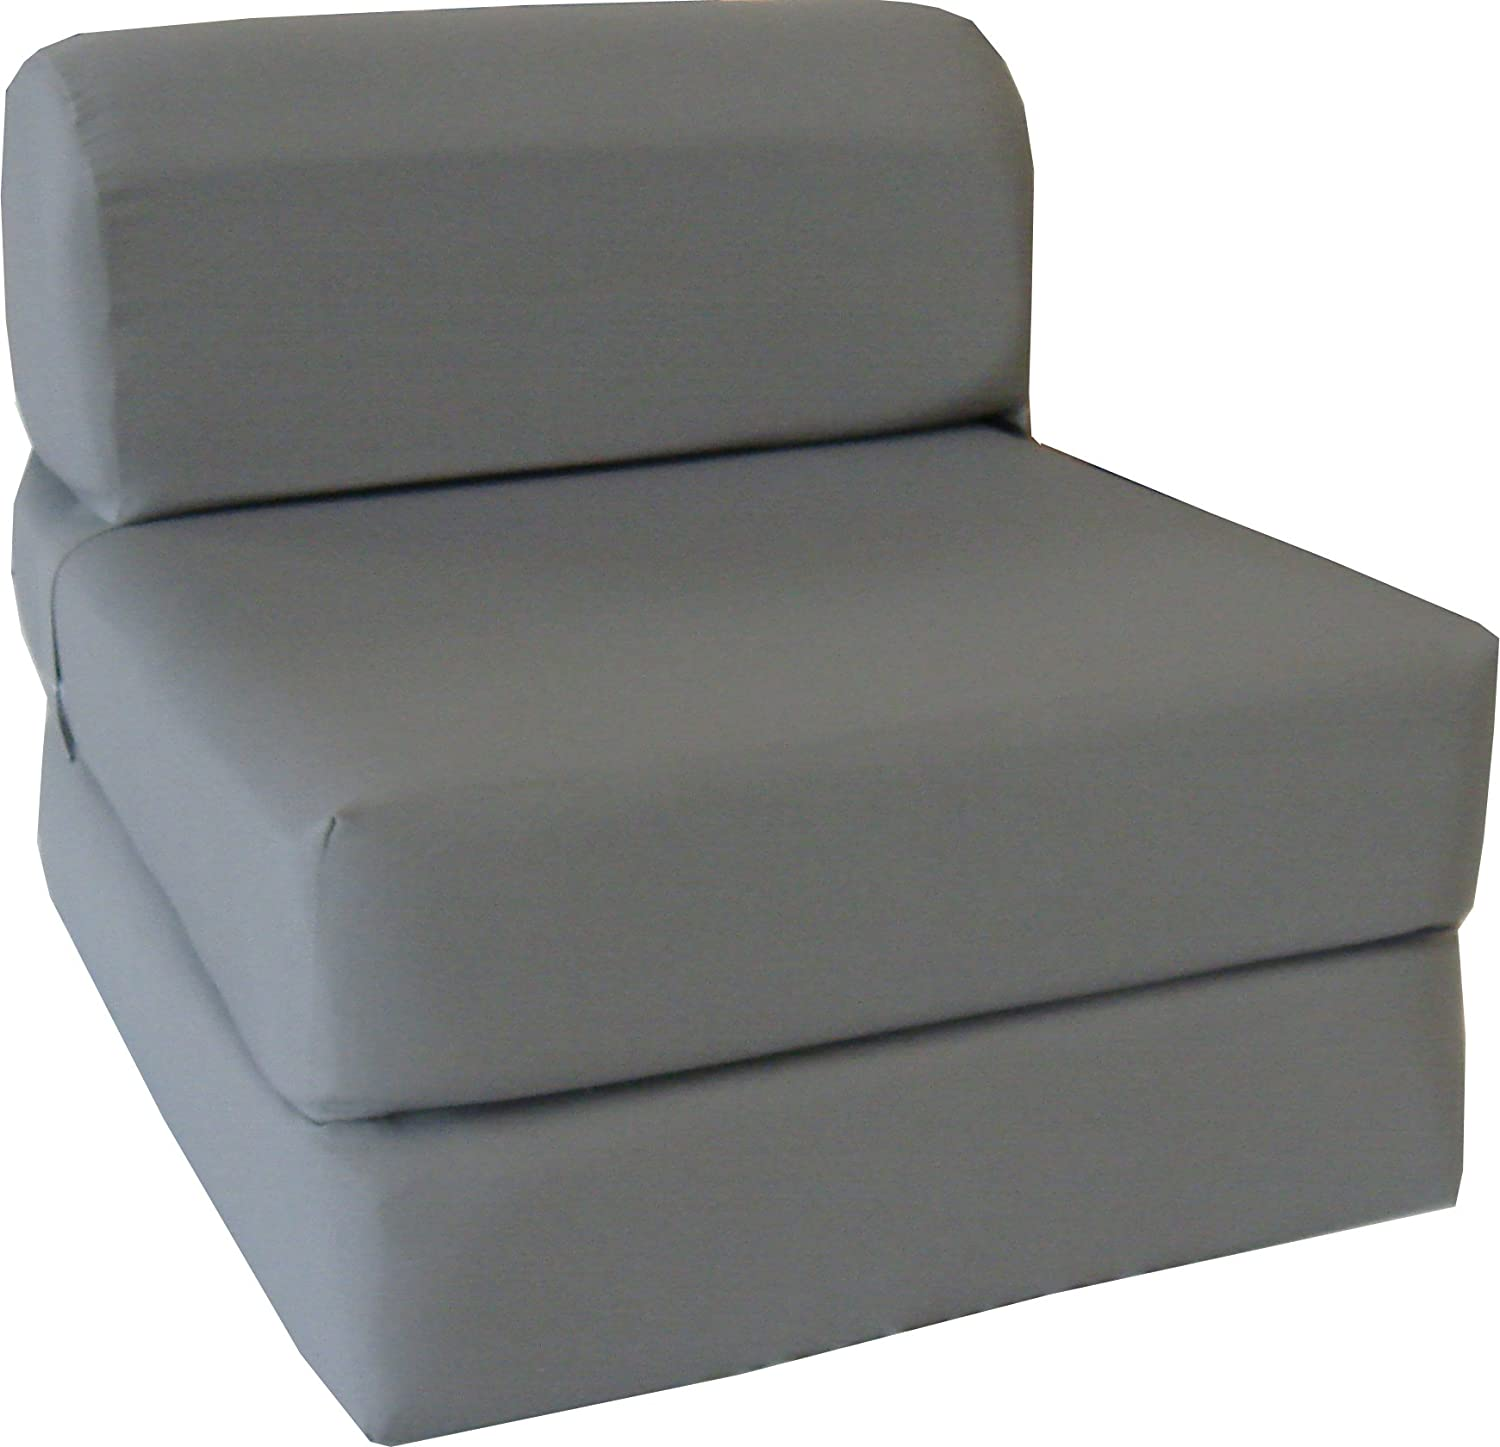 gray sleeper chair folding foam bed sized 6 thick x 32 wide x 70